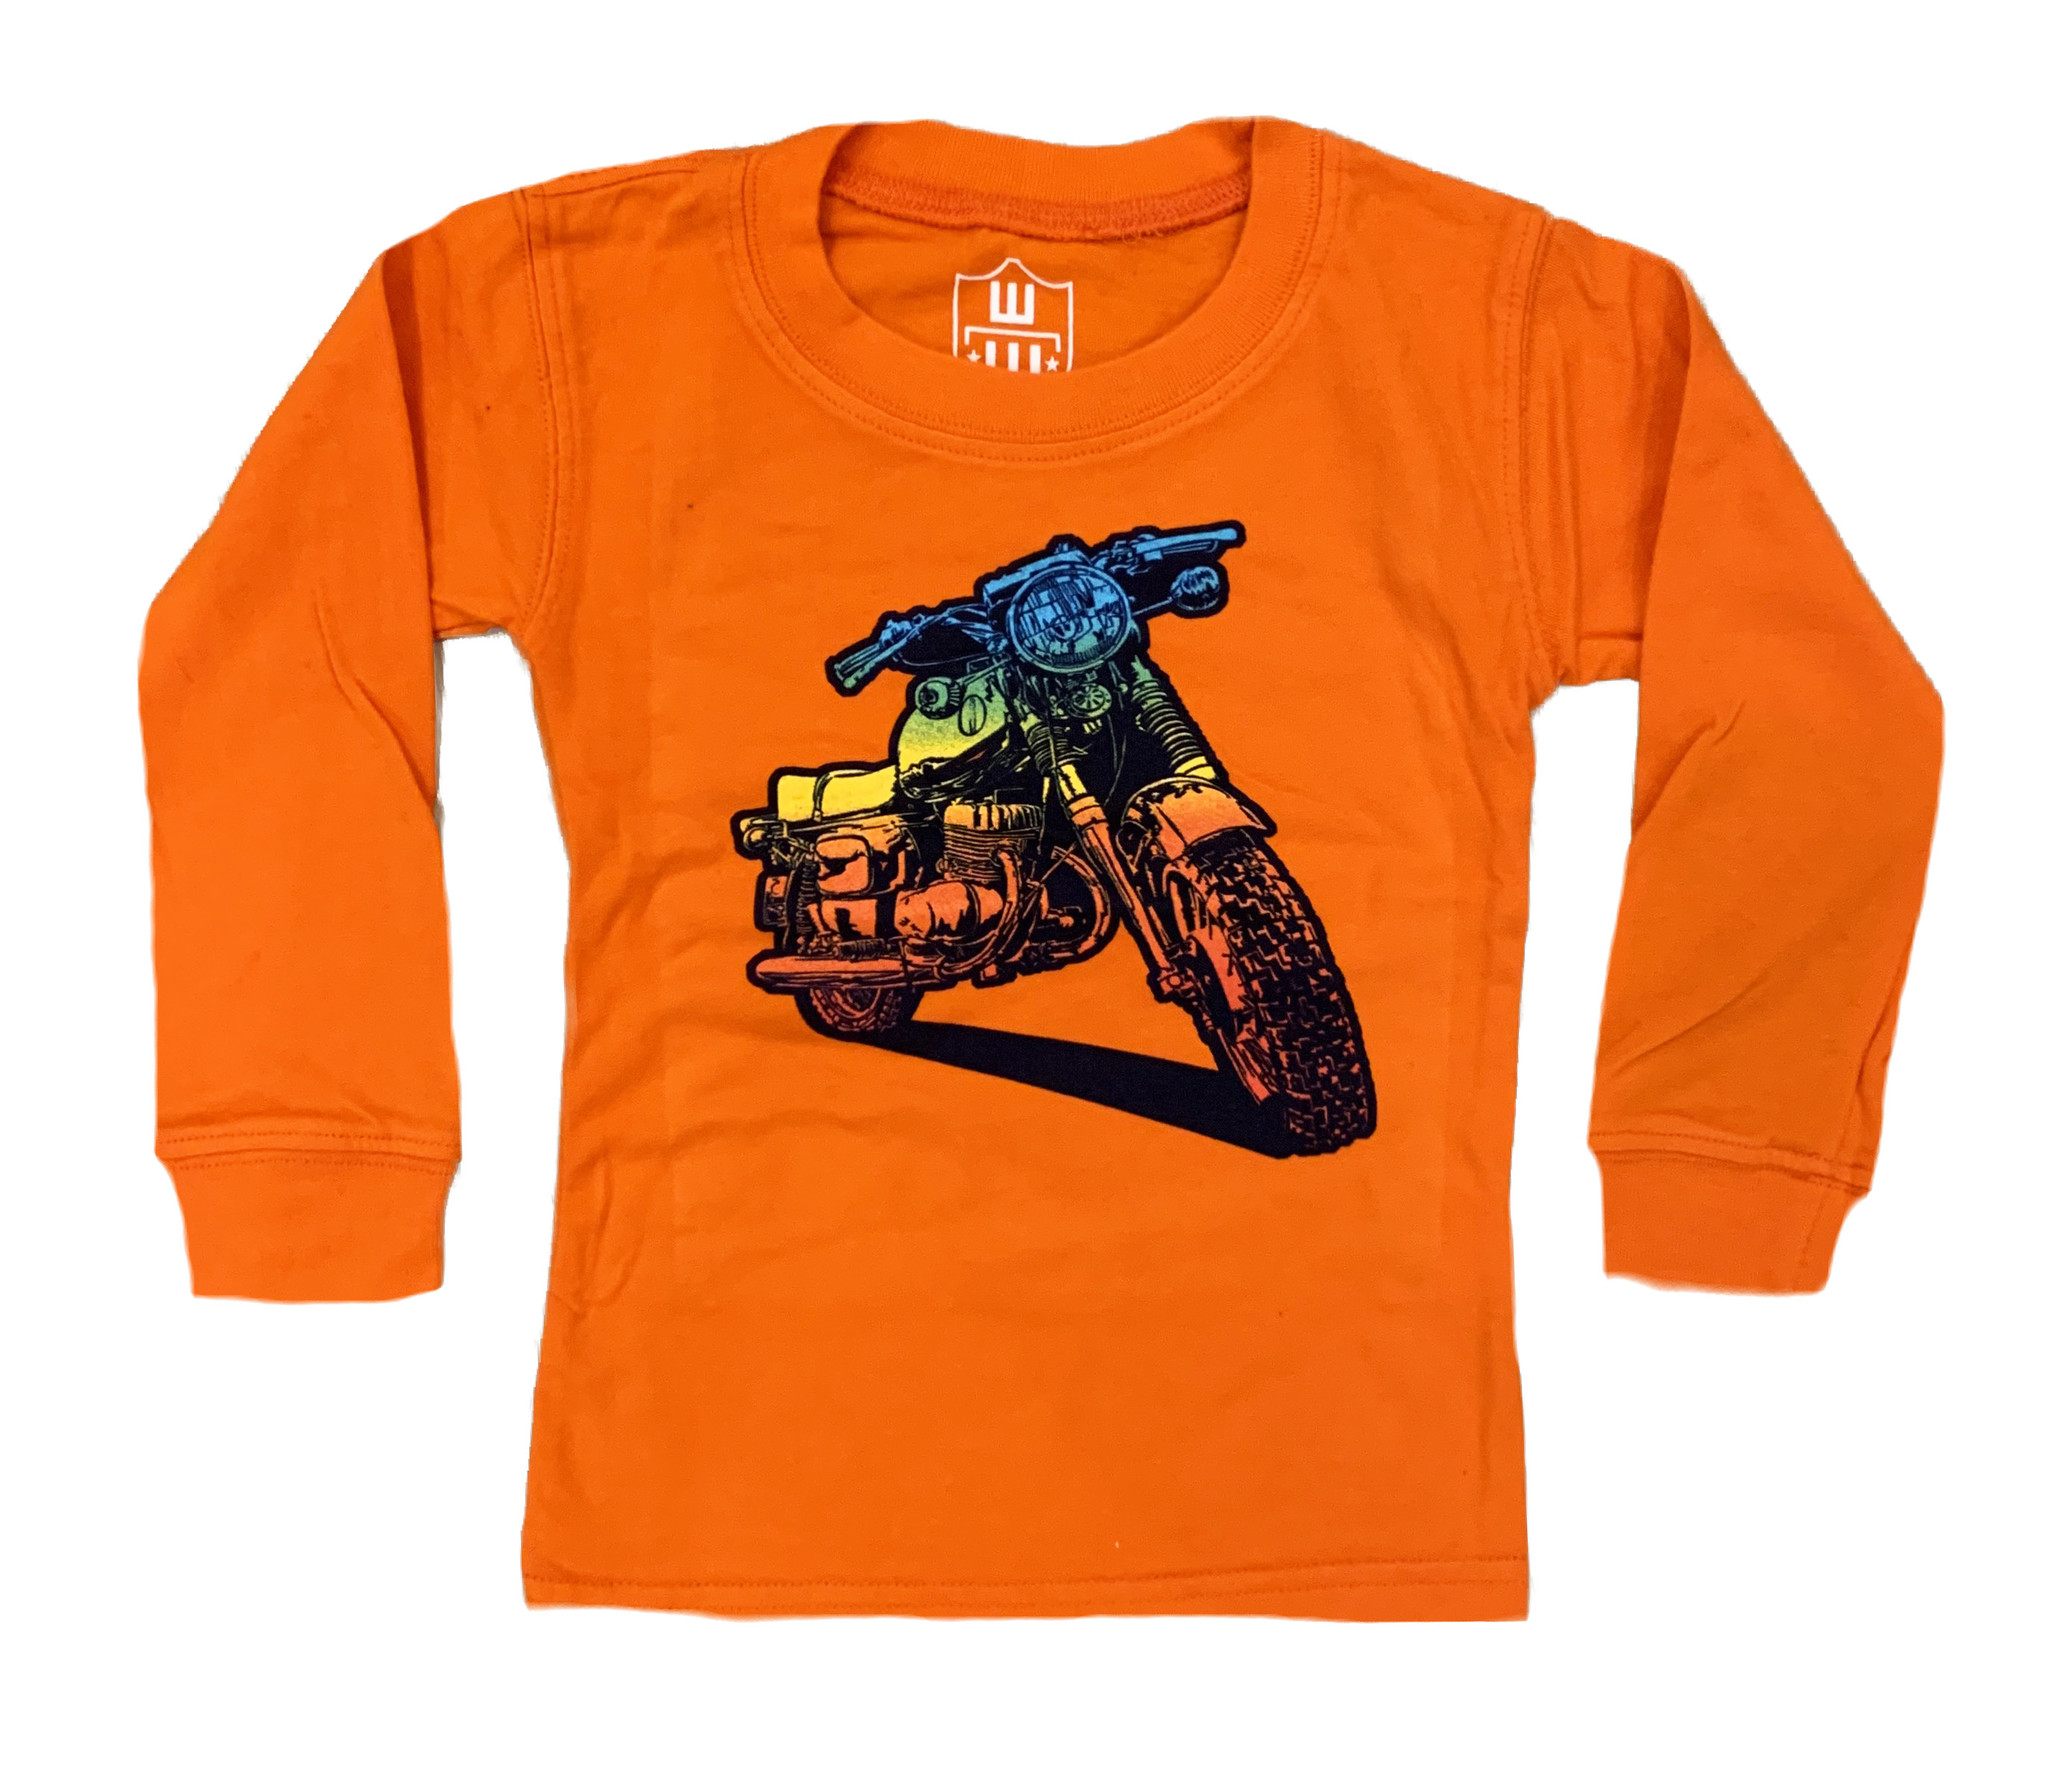 Wes and Willy Orange Bike Infant Tee